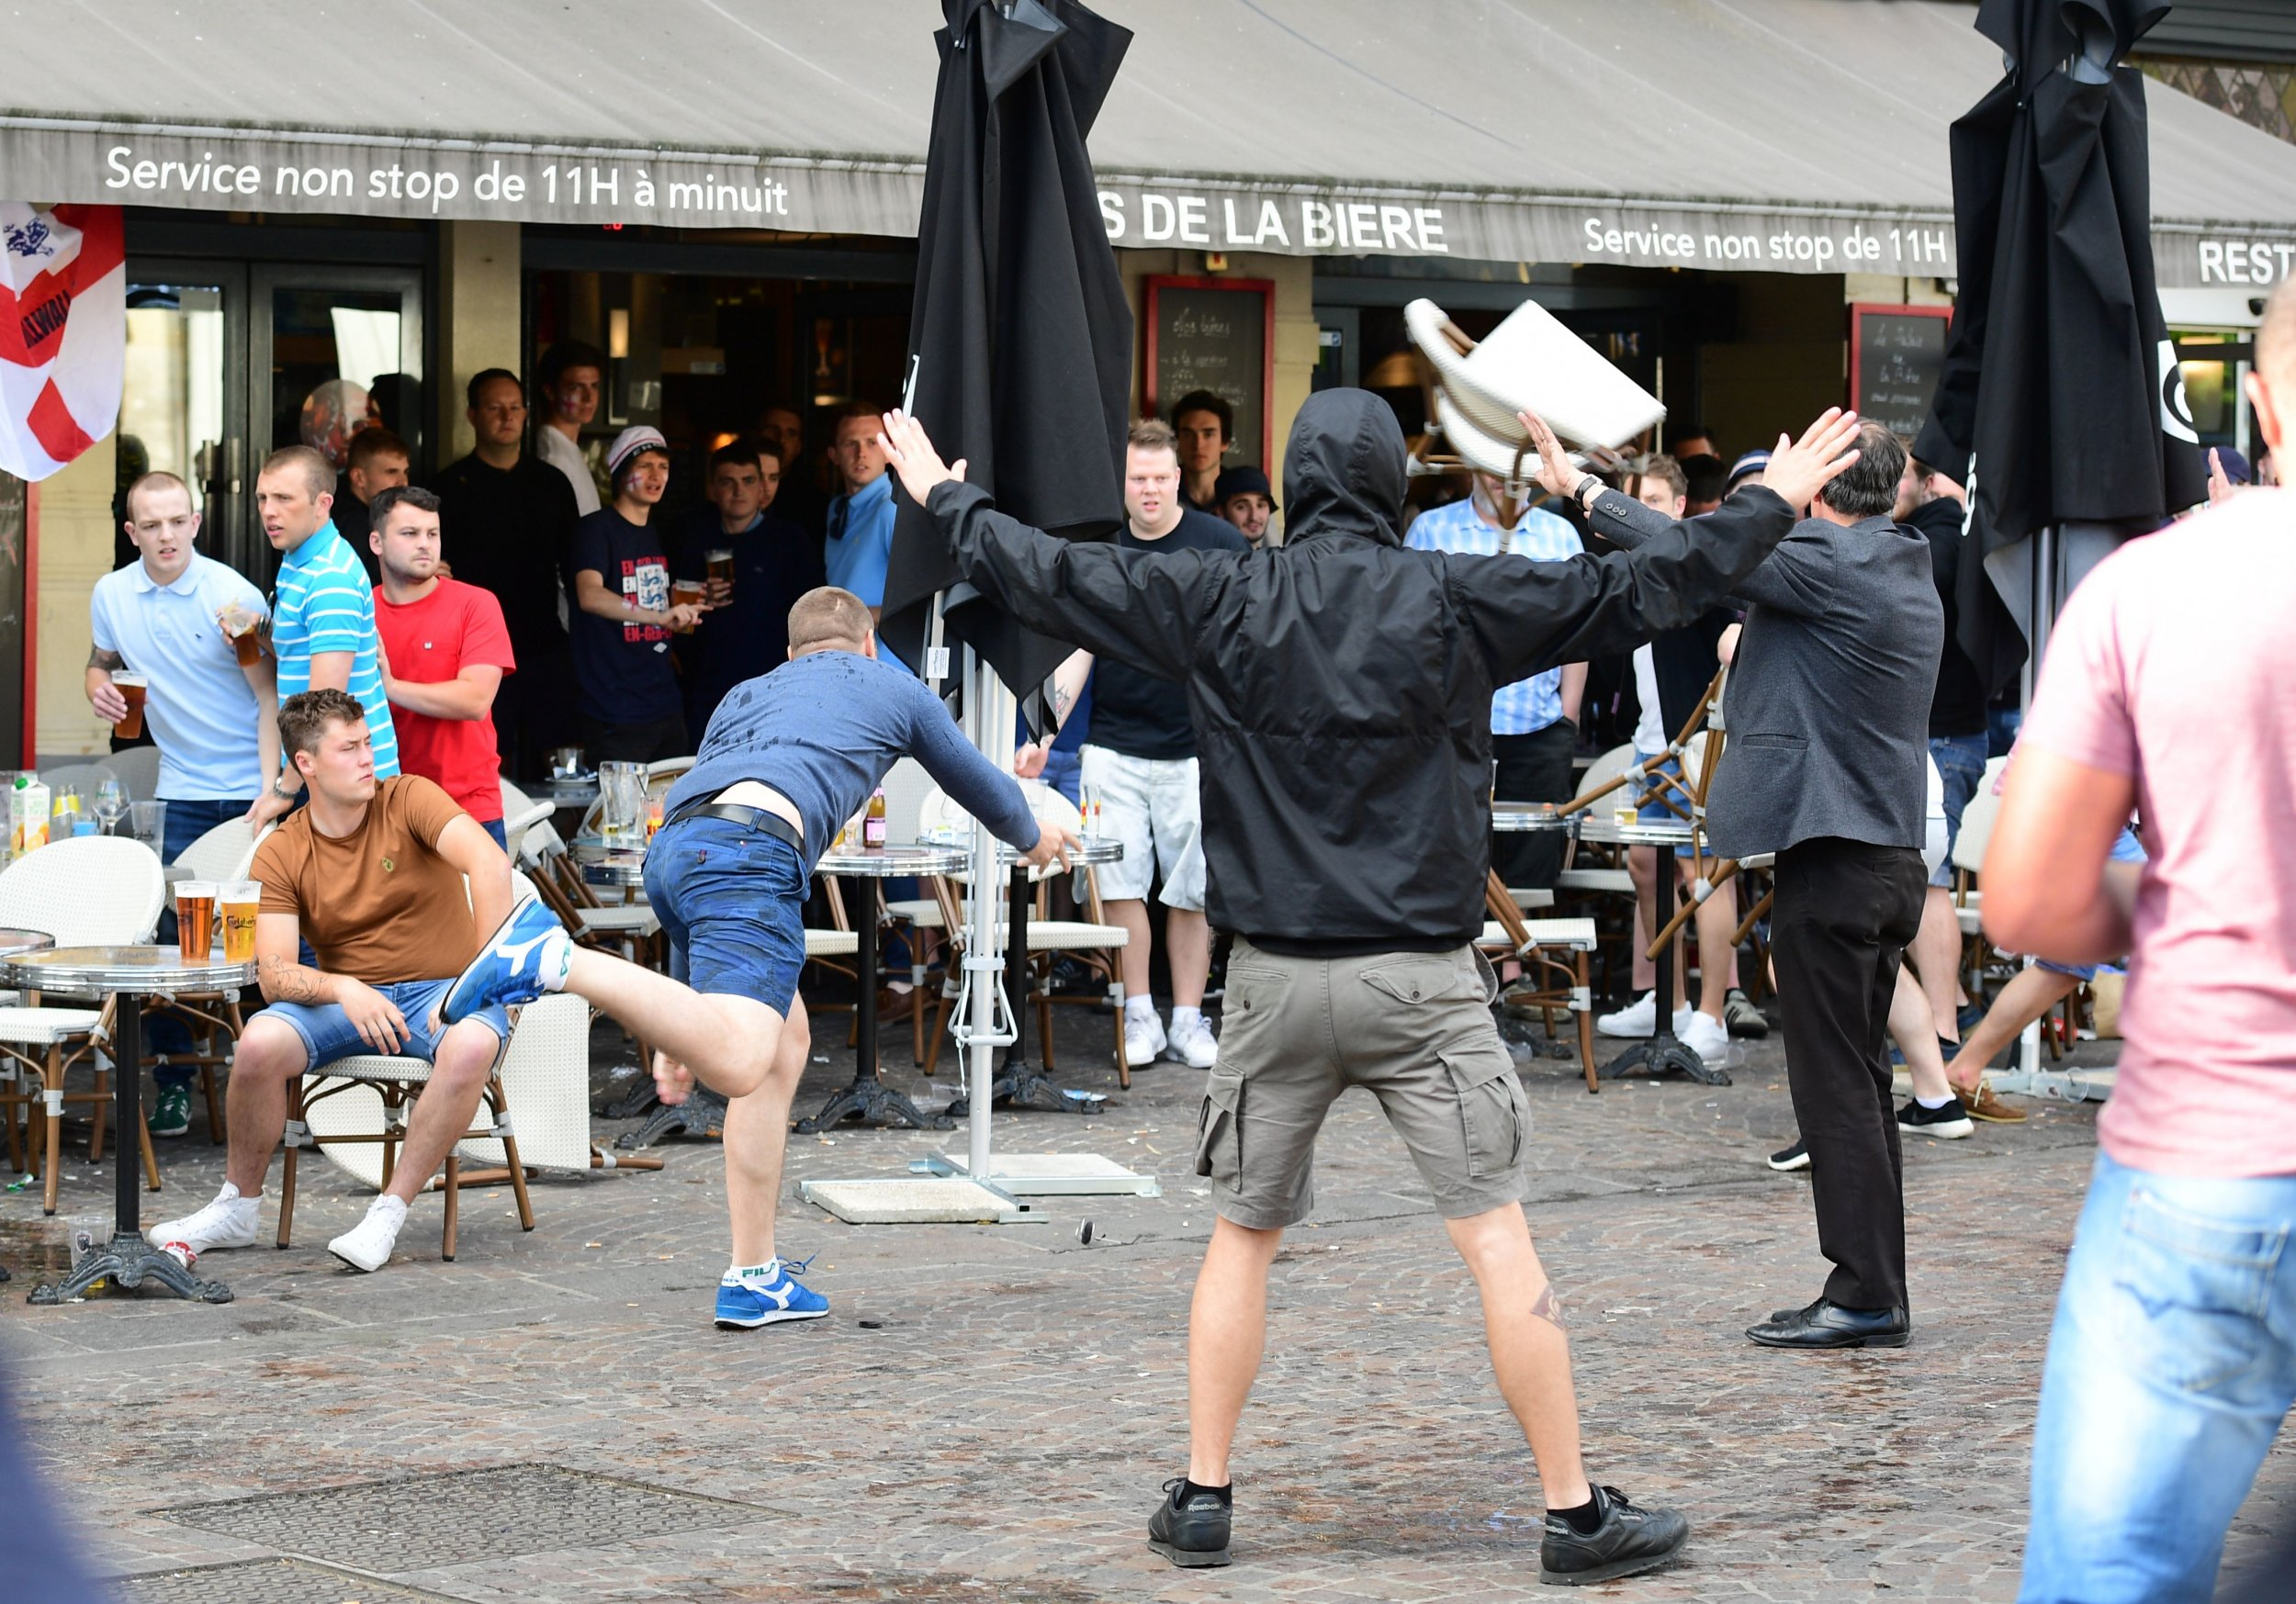 A Russia football supporter lobs a chair in Lille, France.